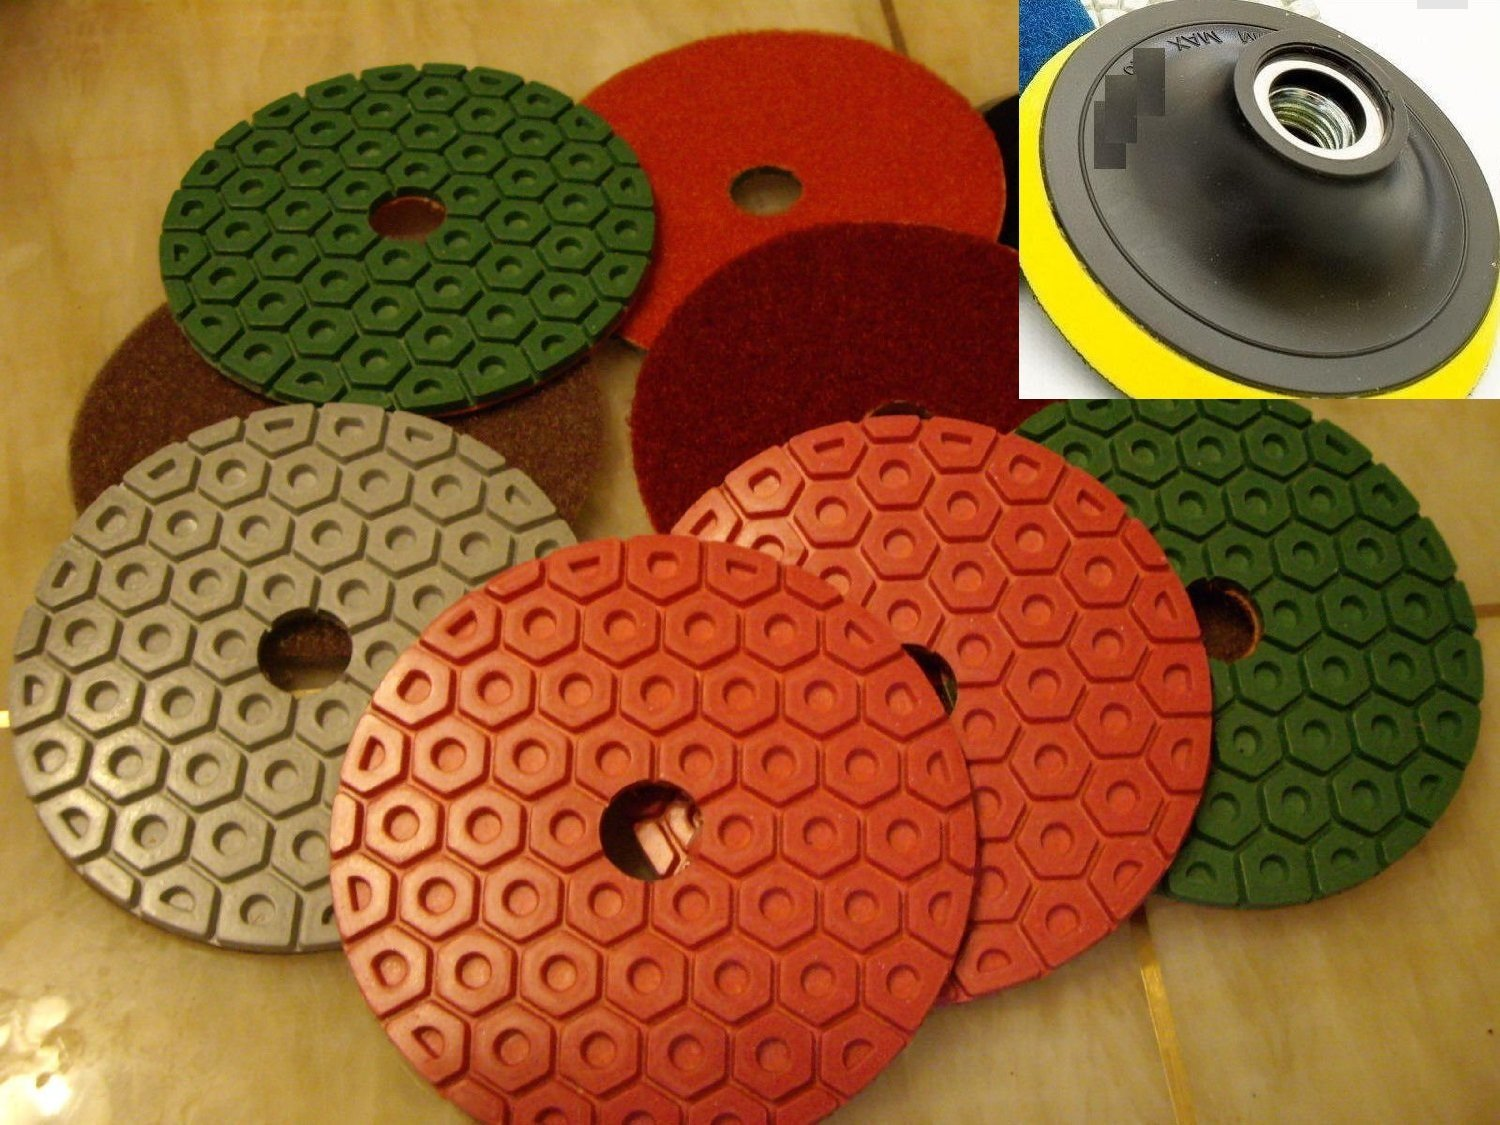 "4"" Diamond Polishing Pad Honeycomb Durable Type 9+1 Pieces for Granite Marble concrete travertine glass terrazzo FREE Priority shipping"